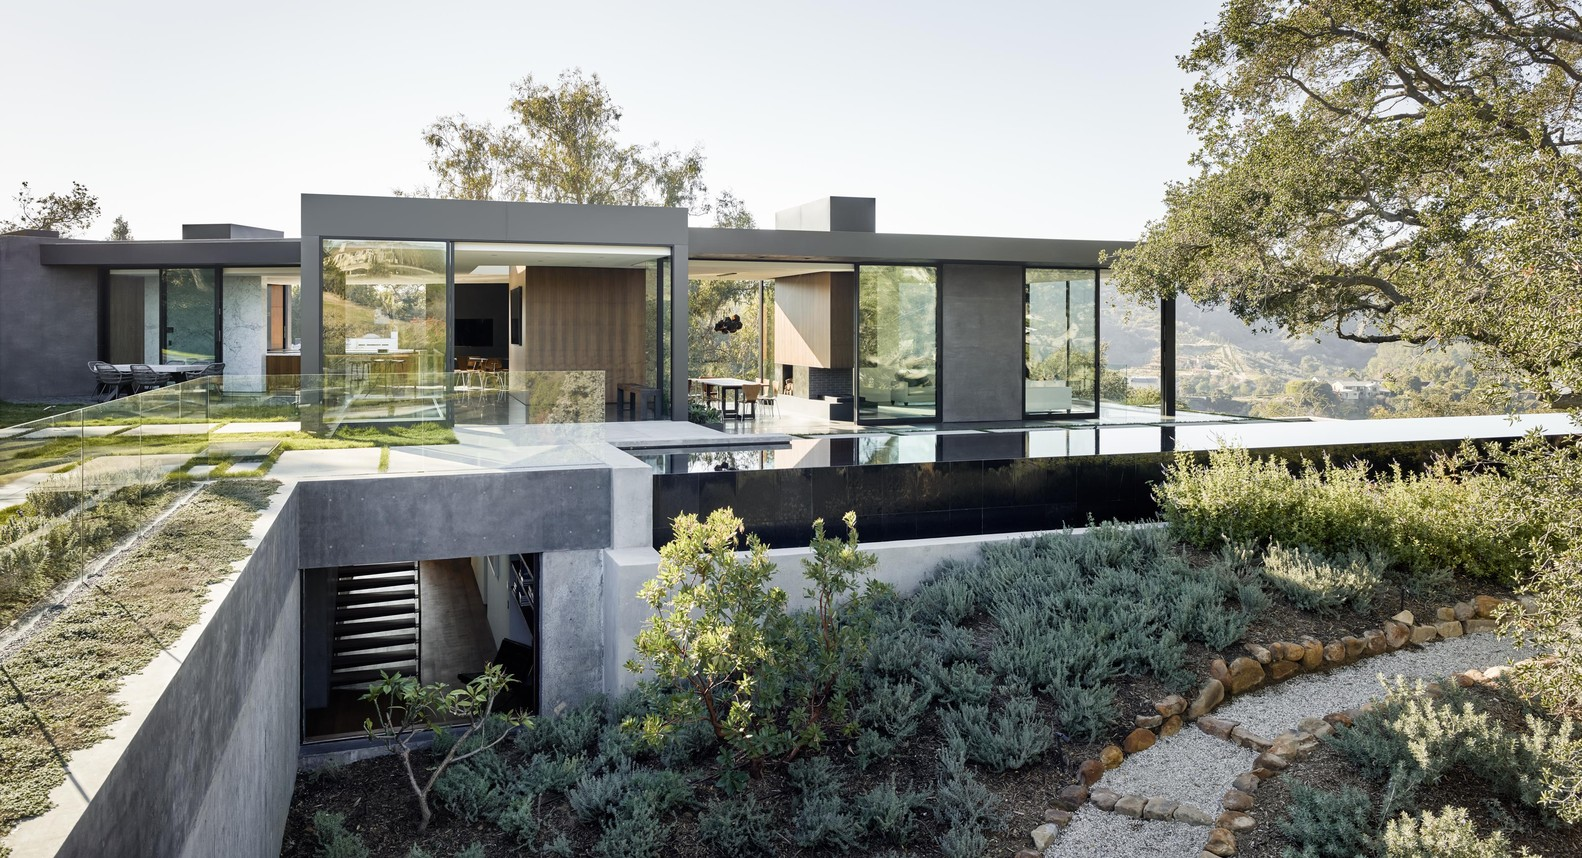 Oak pass house by walker workshop in beverly hills california for Minimalist house beverly hills